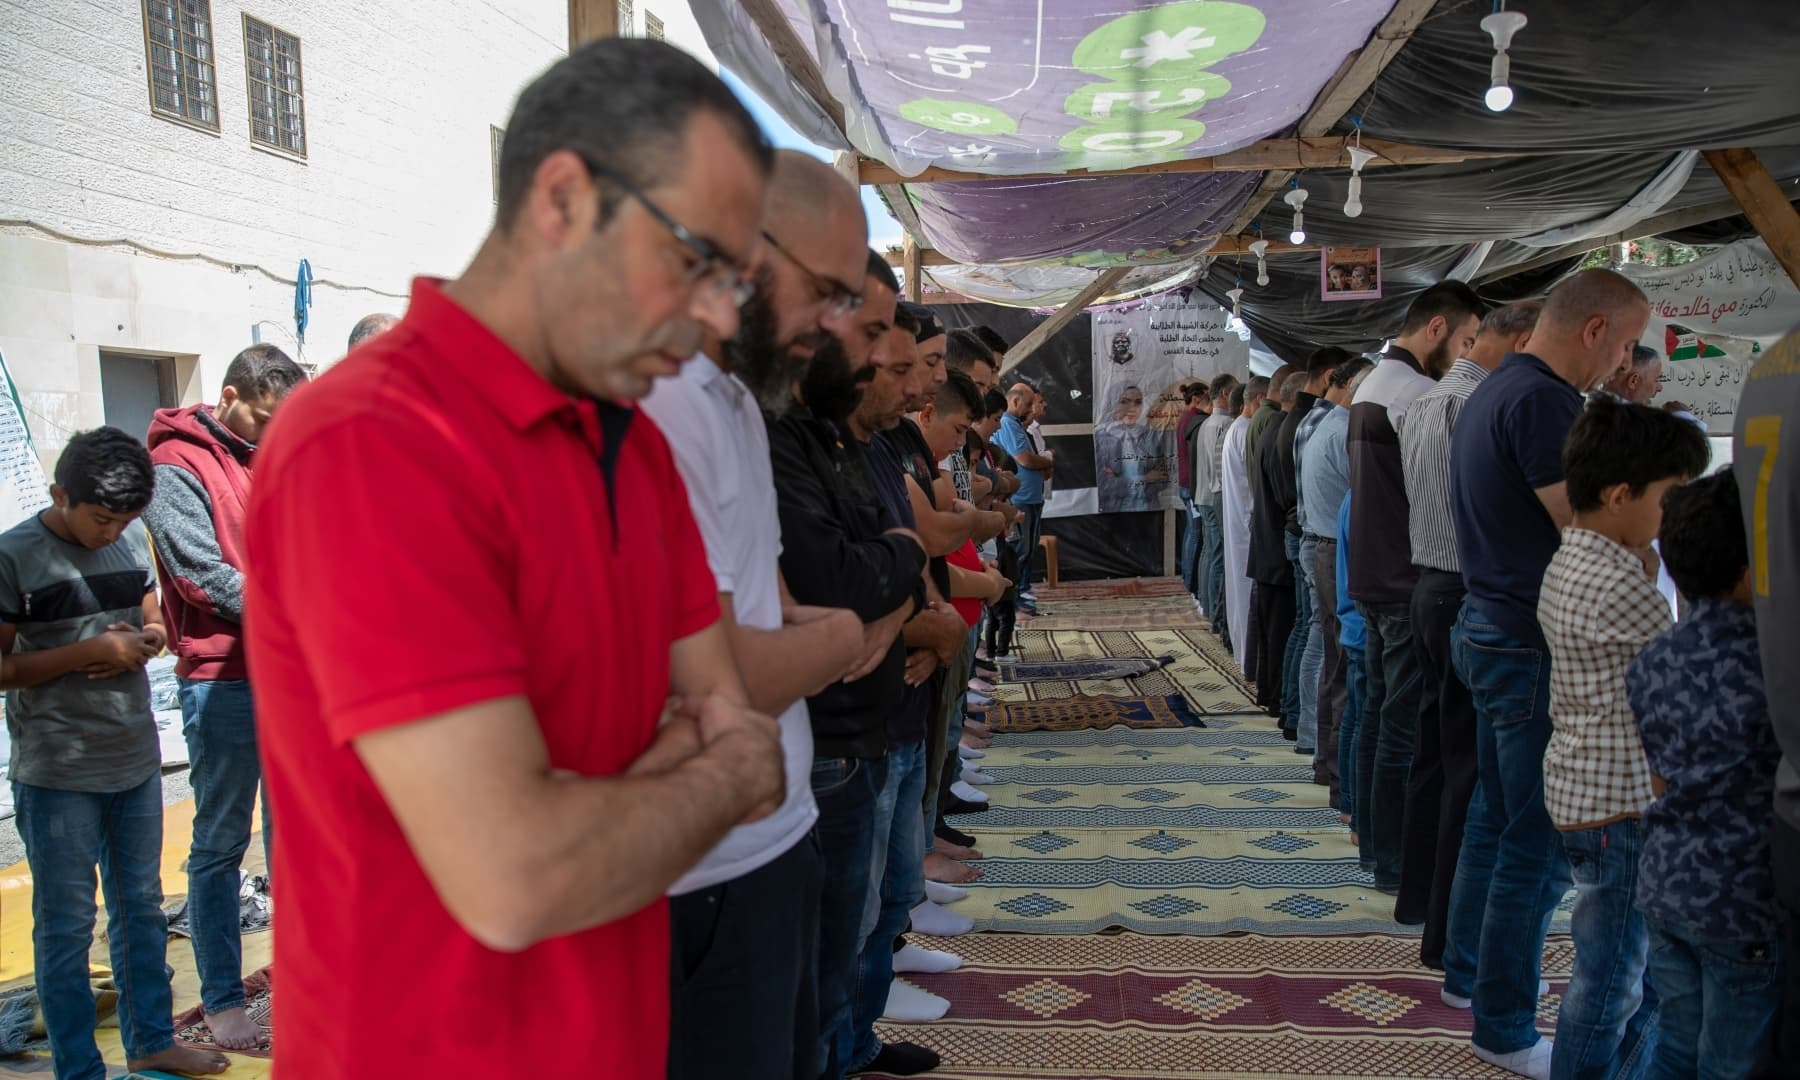 Palestinians attend Friday prayers under posters with the picture and name of Mai Afaneh, who was shot dead by Israeli forces in the West Bank last June and held her body after, in the village of Abu Dis, South of Ramallah, Palestine on September 24, 2021. — AP